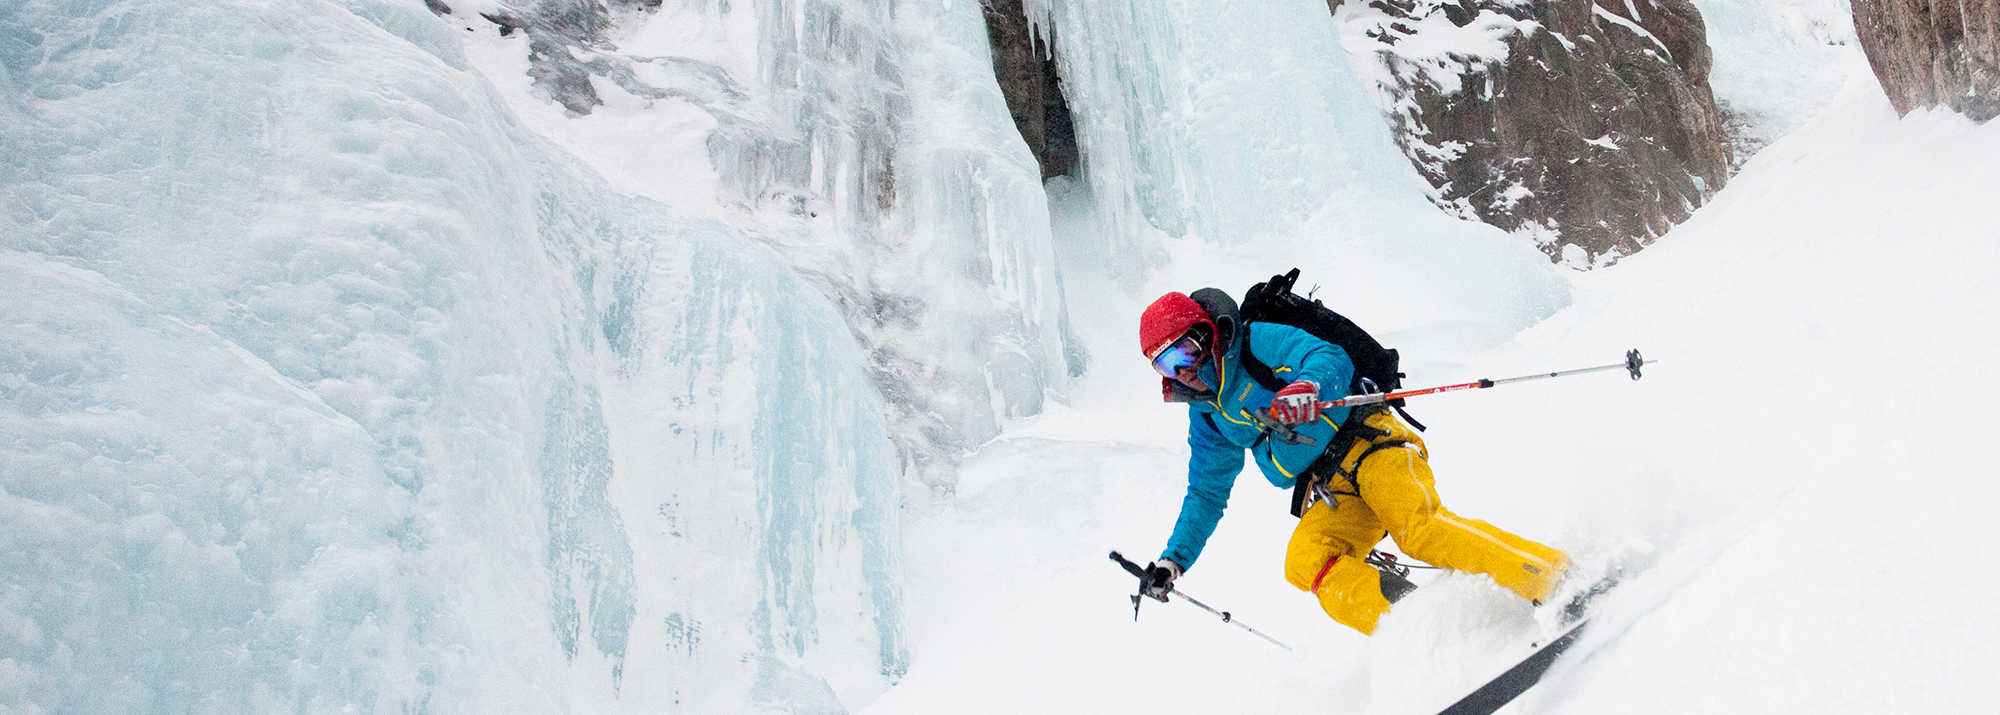 The Apocalypse Couloir – Photo: David Stubbs